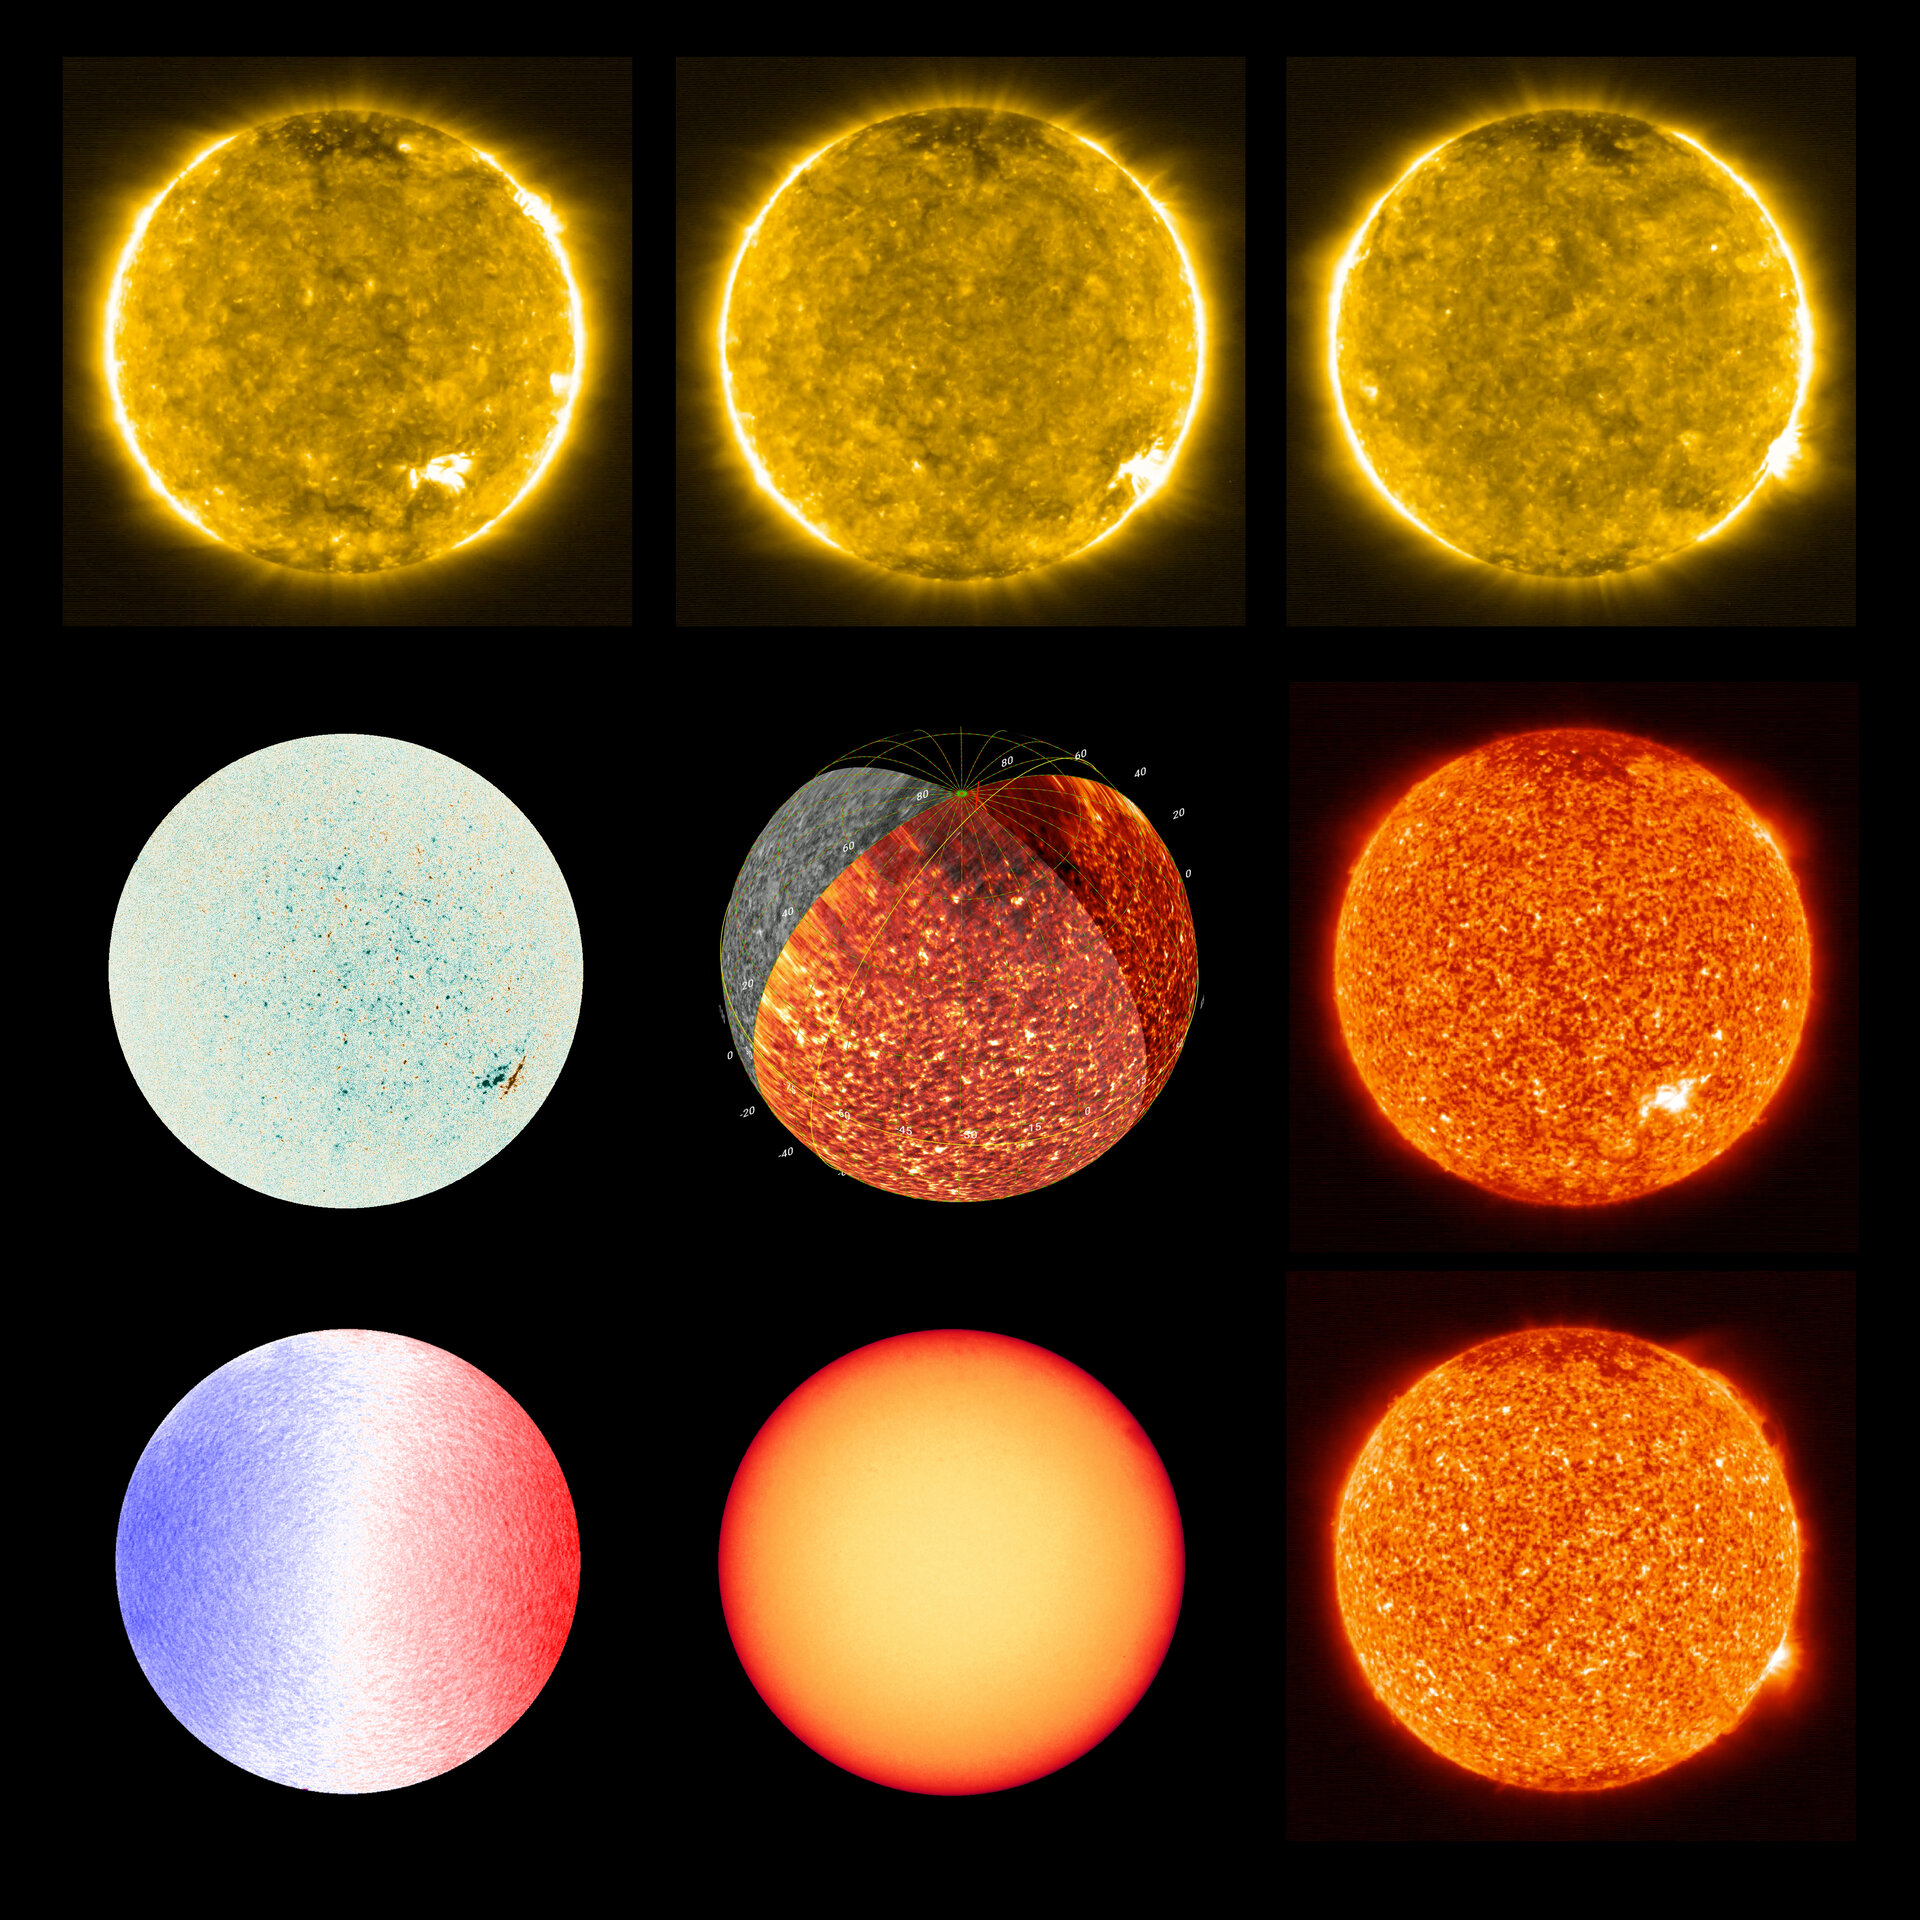 Scientific illustrations of the sun from the European Space Agency's Solar Observer mission